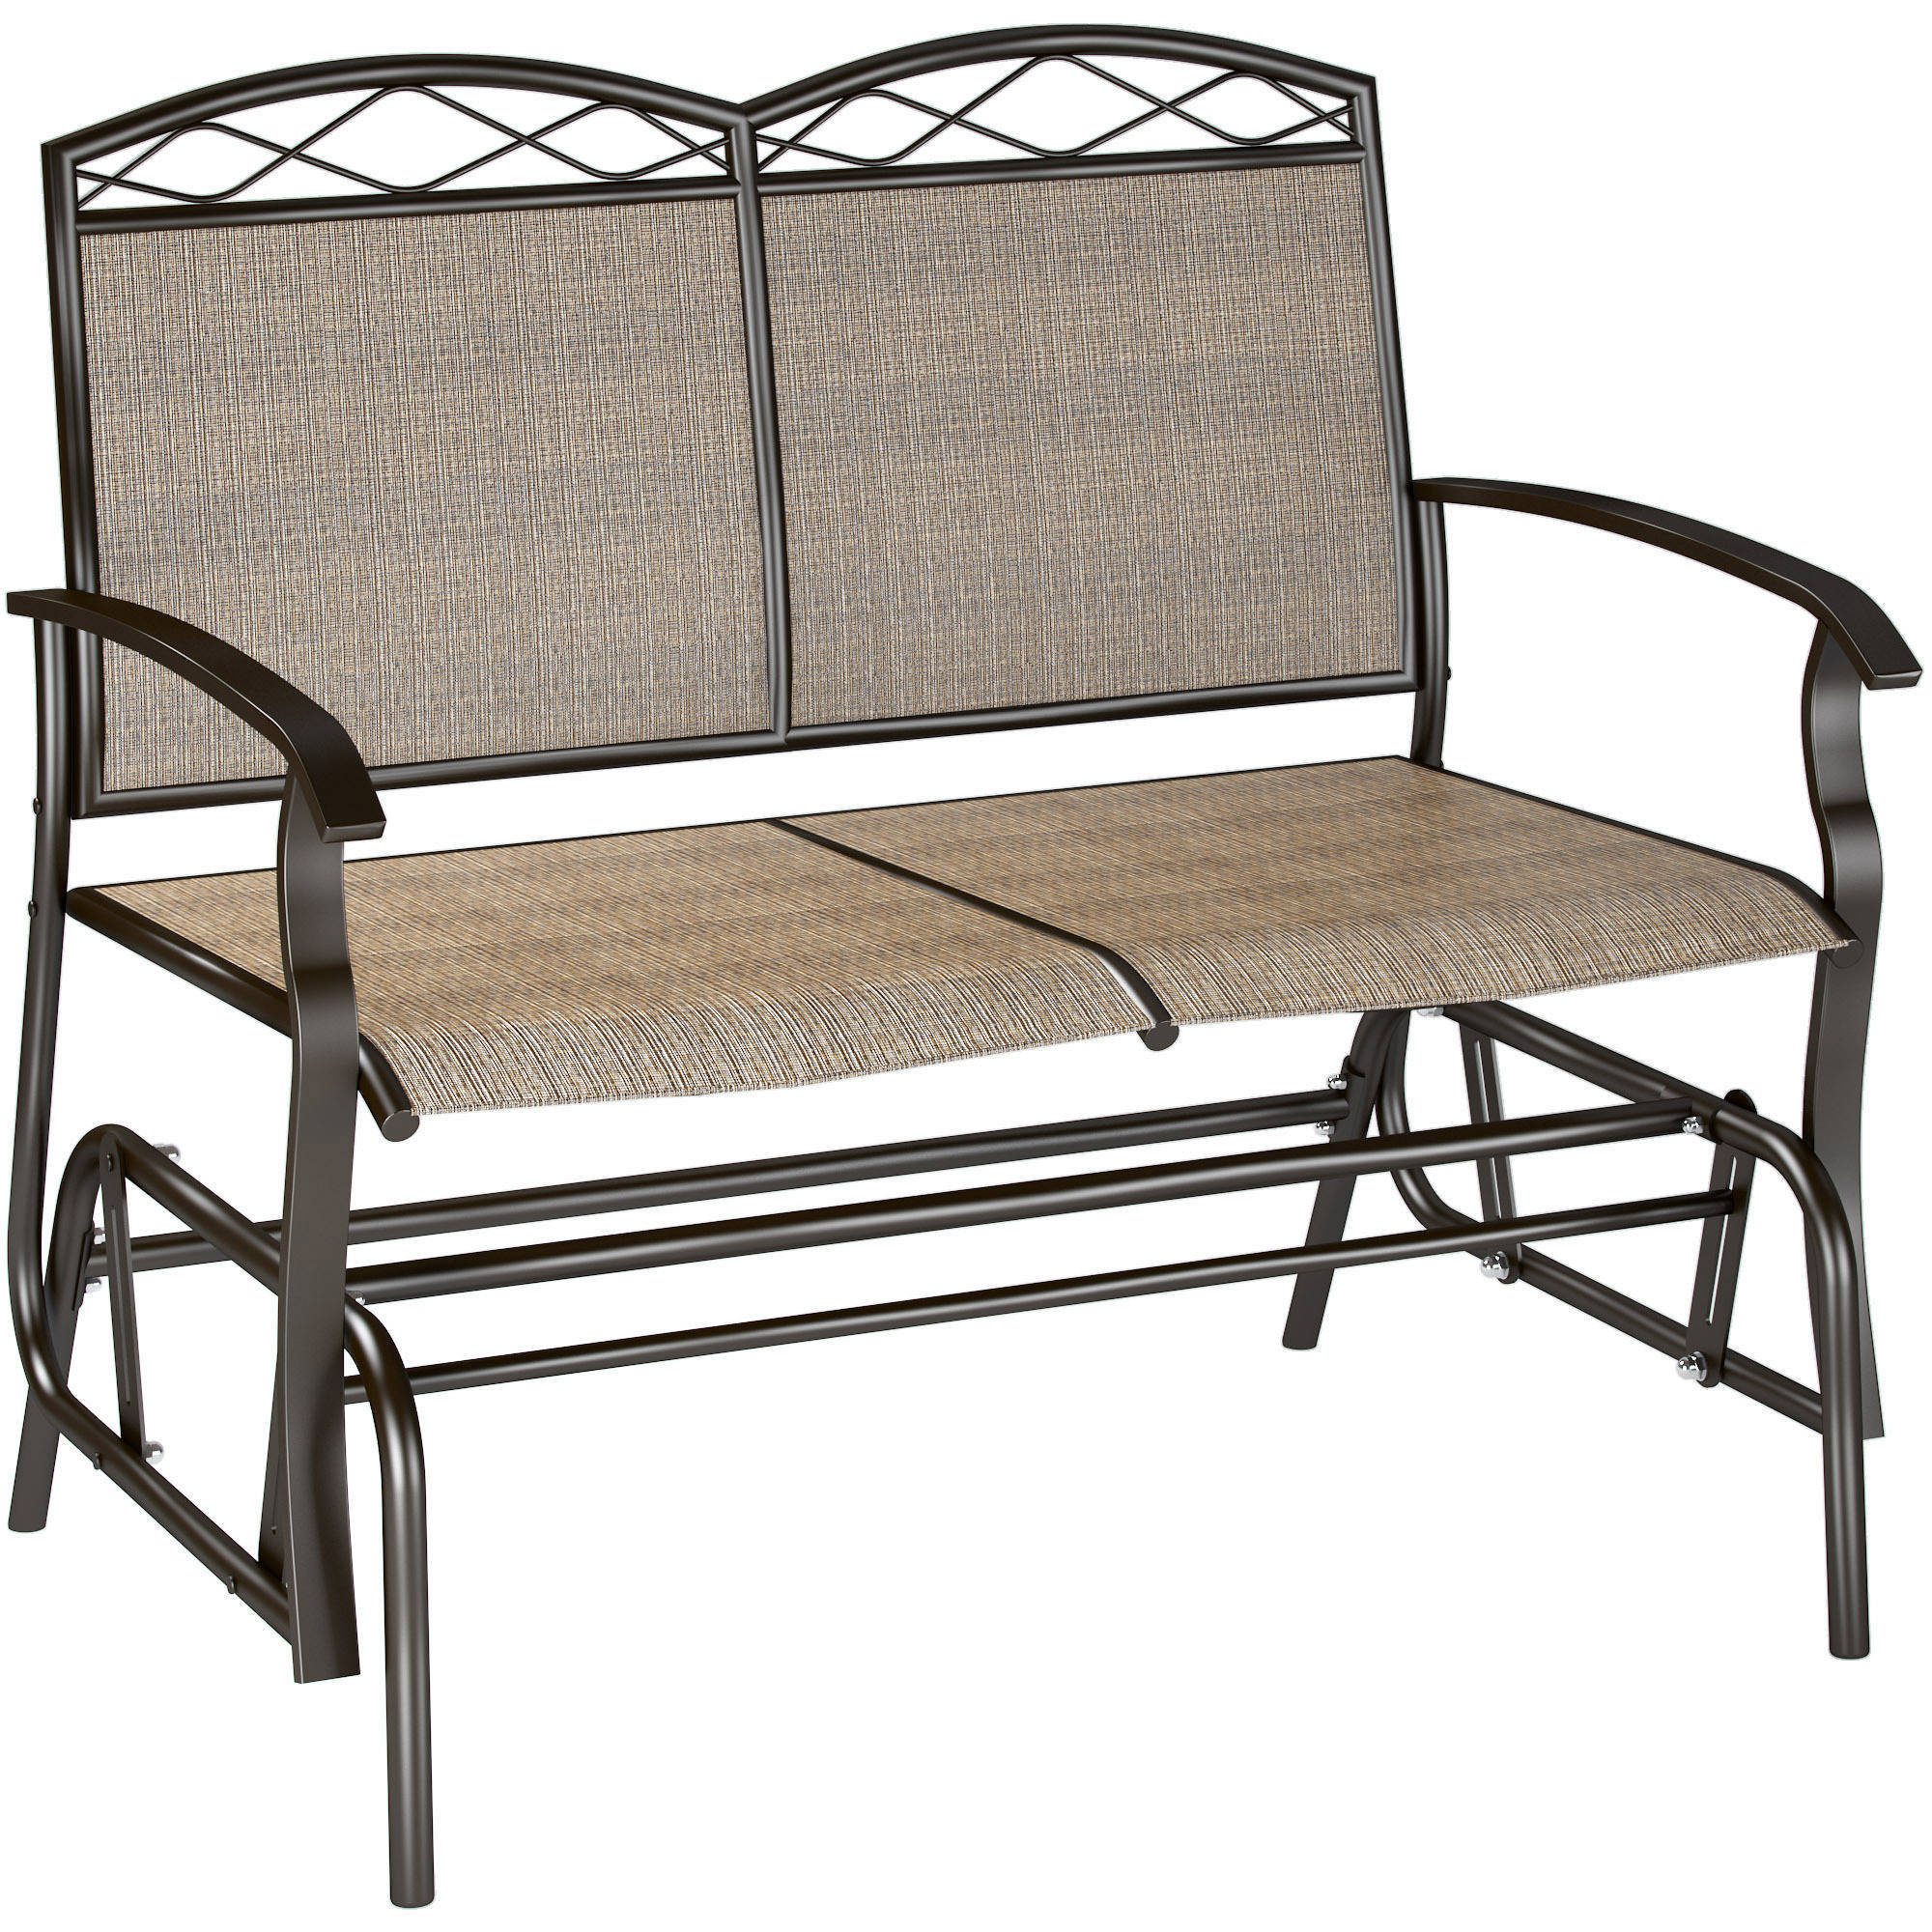 Corliving Speckled Brown Patio Double Glider – Walmart Intended For Metal Powder Coat Double Seat Glider Benches (View 5 of 25)